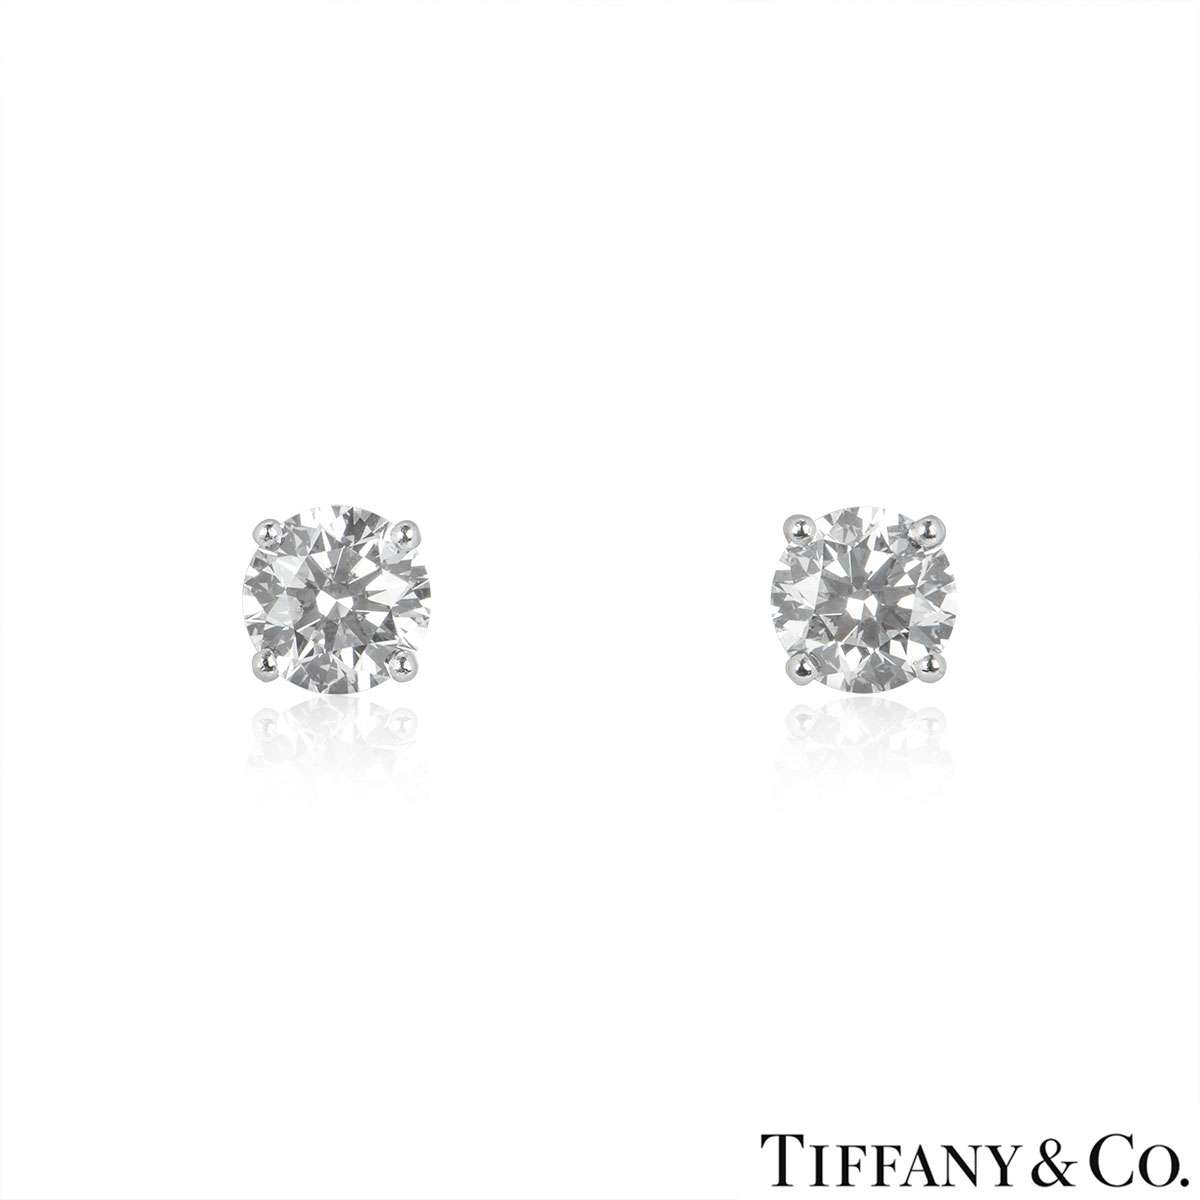 Tiffany & Co. Diamond Ear Studs 2.43ct TDW